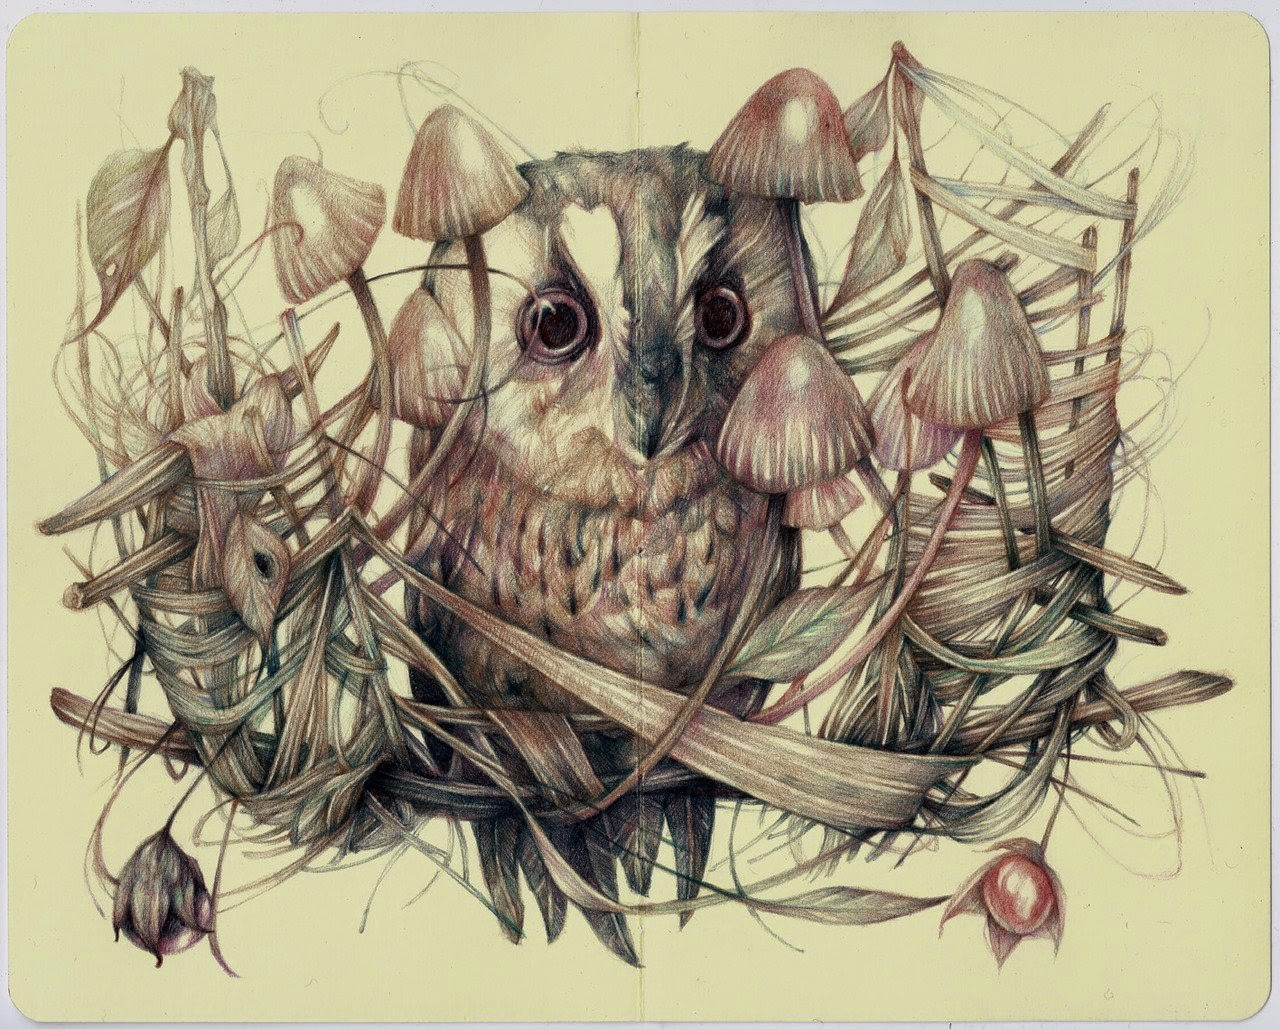 09-Marco-Mazzoni-Surreal-Animal-Drawings-www-designstack-co